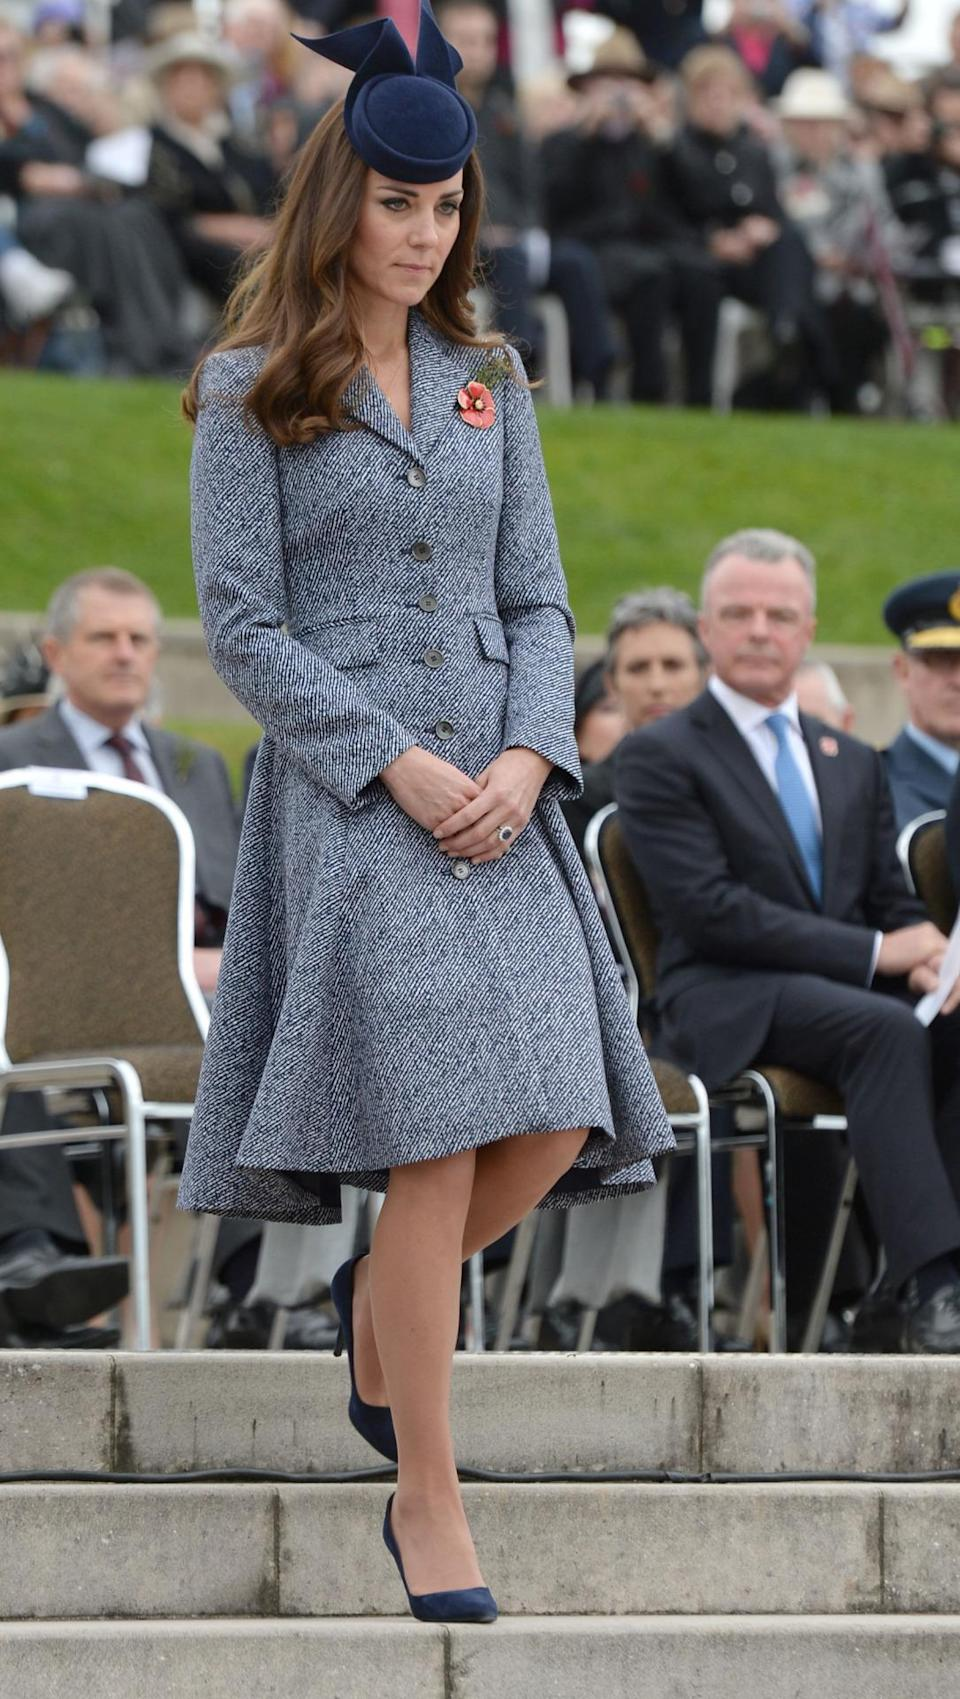 <p>On the final day of the Australian royal tour, Kate wore a jacquard Michael Kors coat and a navy hat by Australian milliner, Jonathan Howard. Other accessories included suede Alexander McQueen heels and the Duchess's trusty Stuart Weitzman clutch. </p><p><i>[Photo: PA]</i></p>